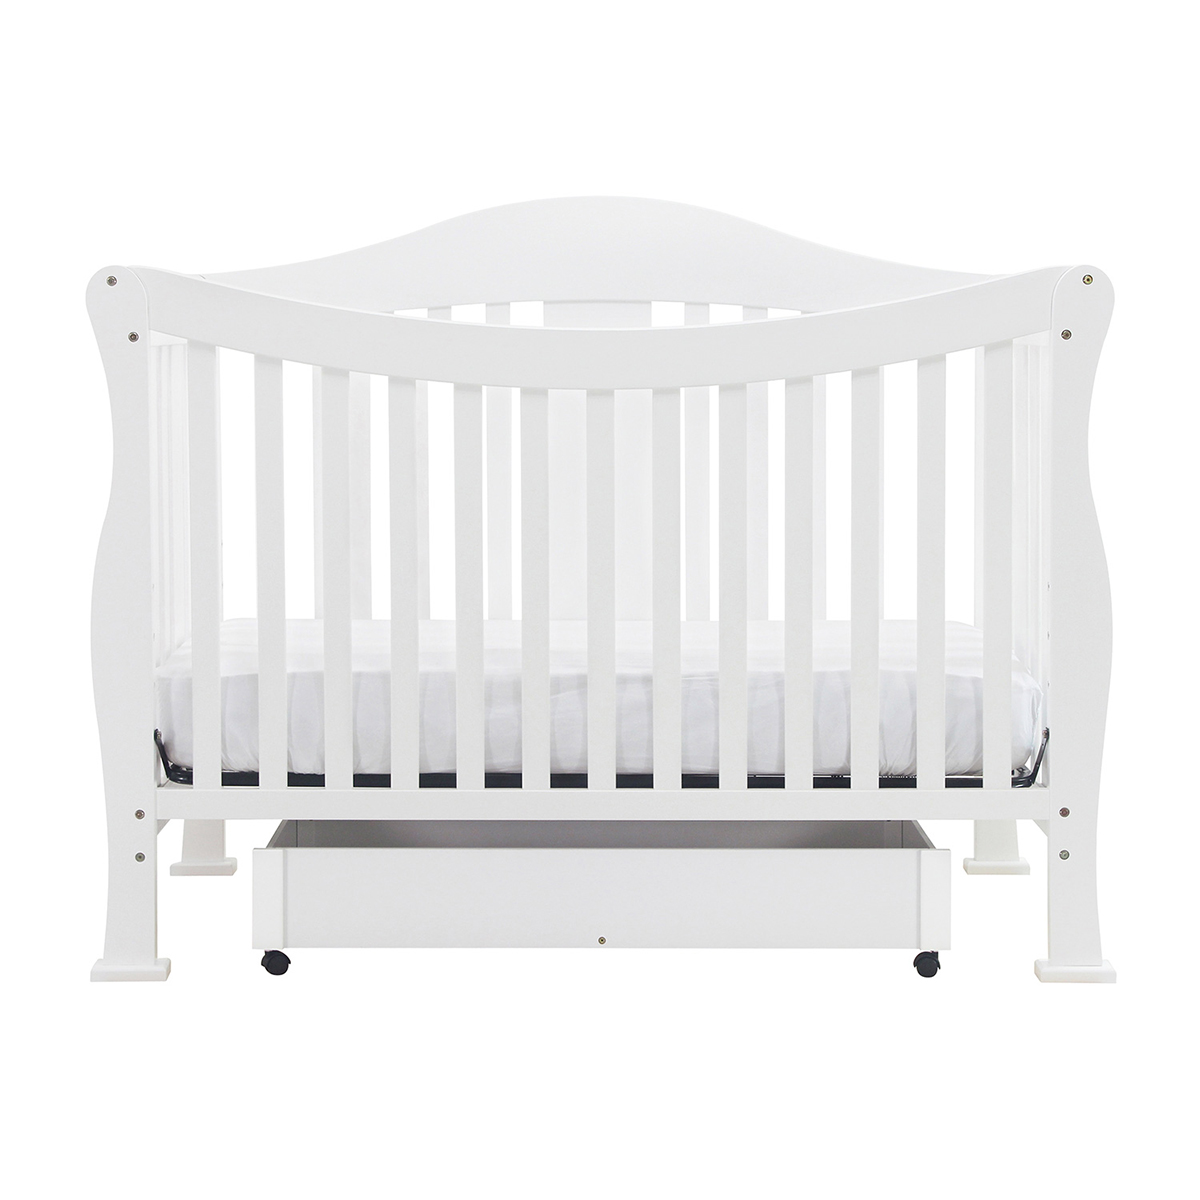 cribs convertible rails crib by as in baby toddler parker bed raw shown w magnifier pure davinci million dollar collection white